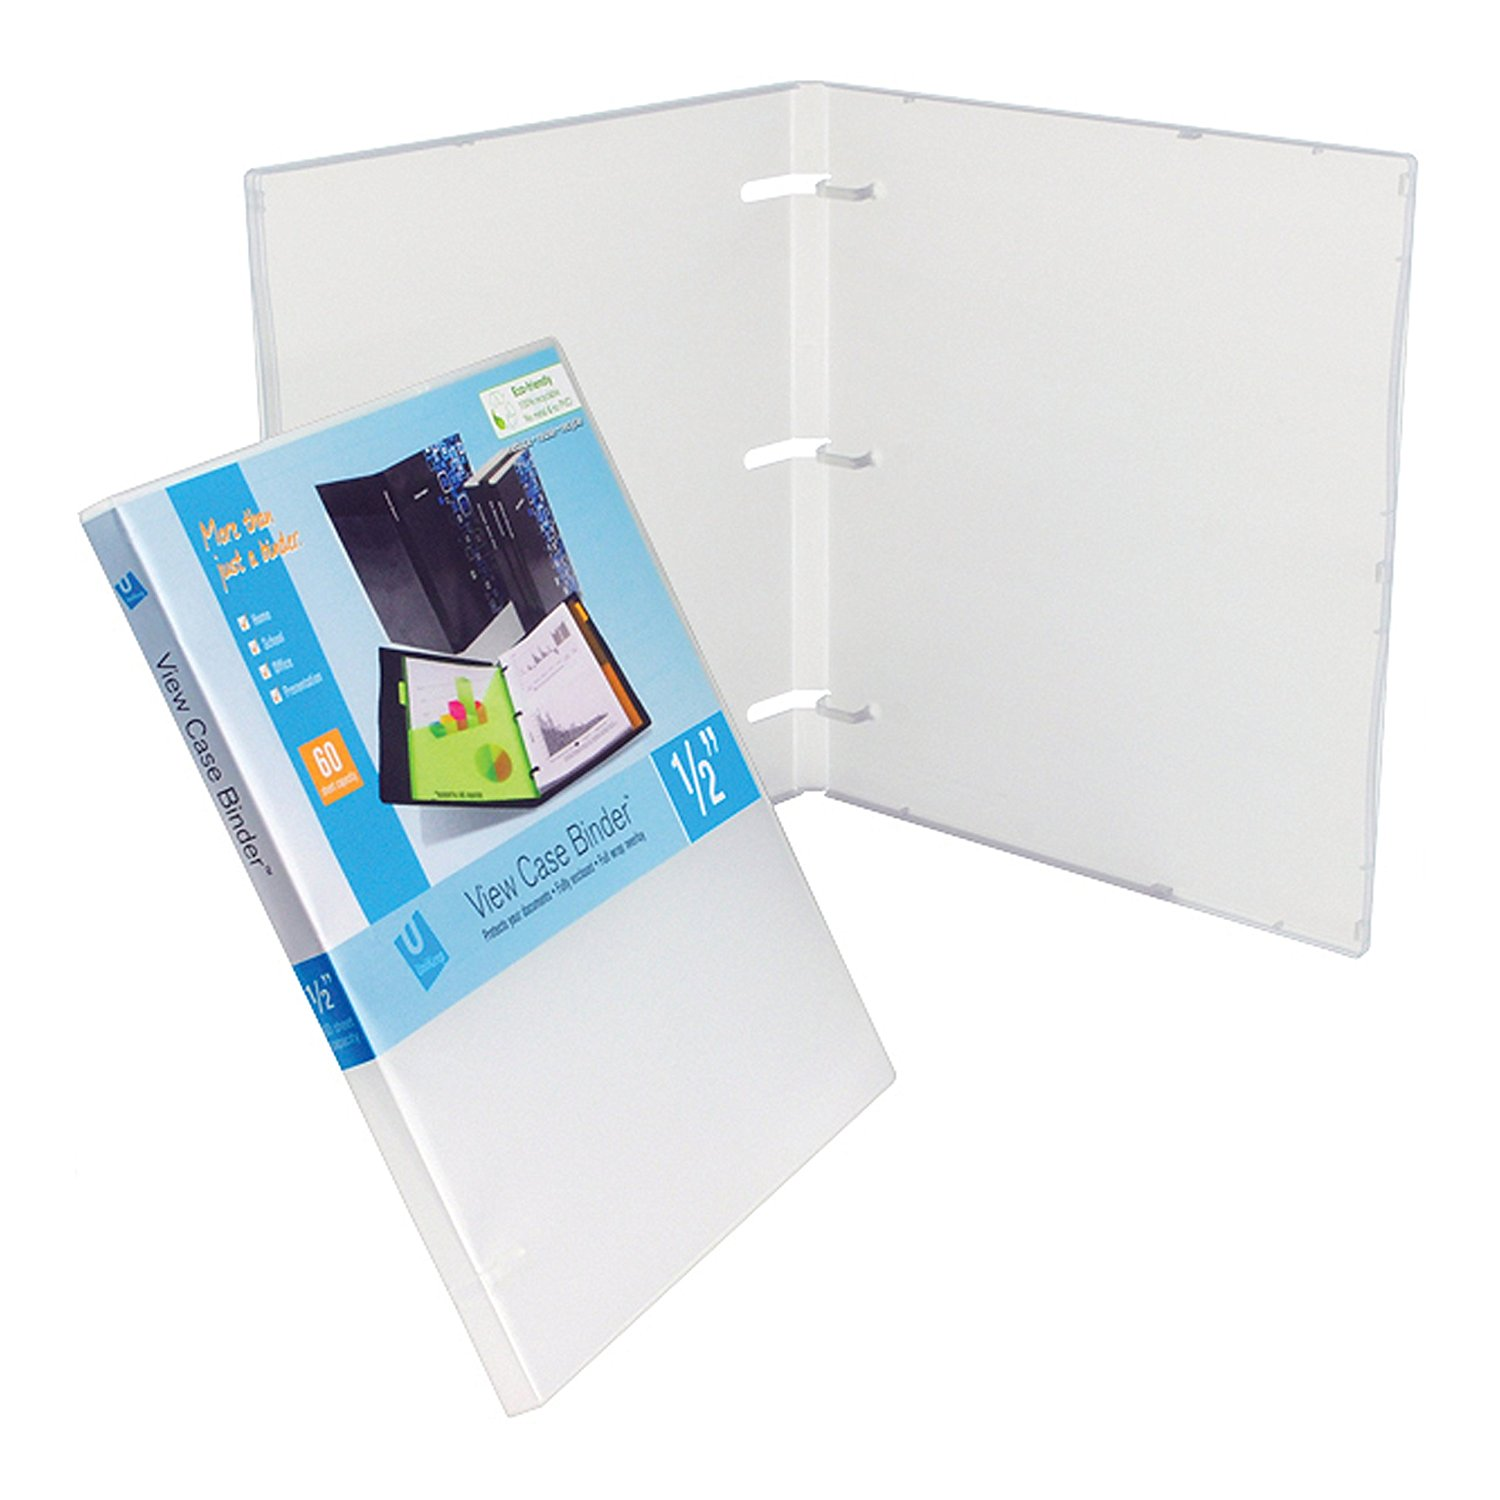 UniKeep 3 Ring Binder Clear Fully Enclosed View Binder 0.50 Inch Spine With Clear Outer Overlay Box of 36... by Unikeep